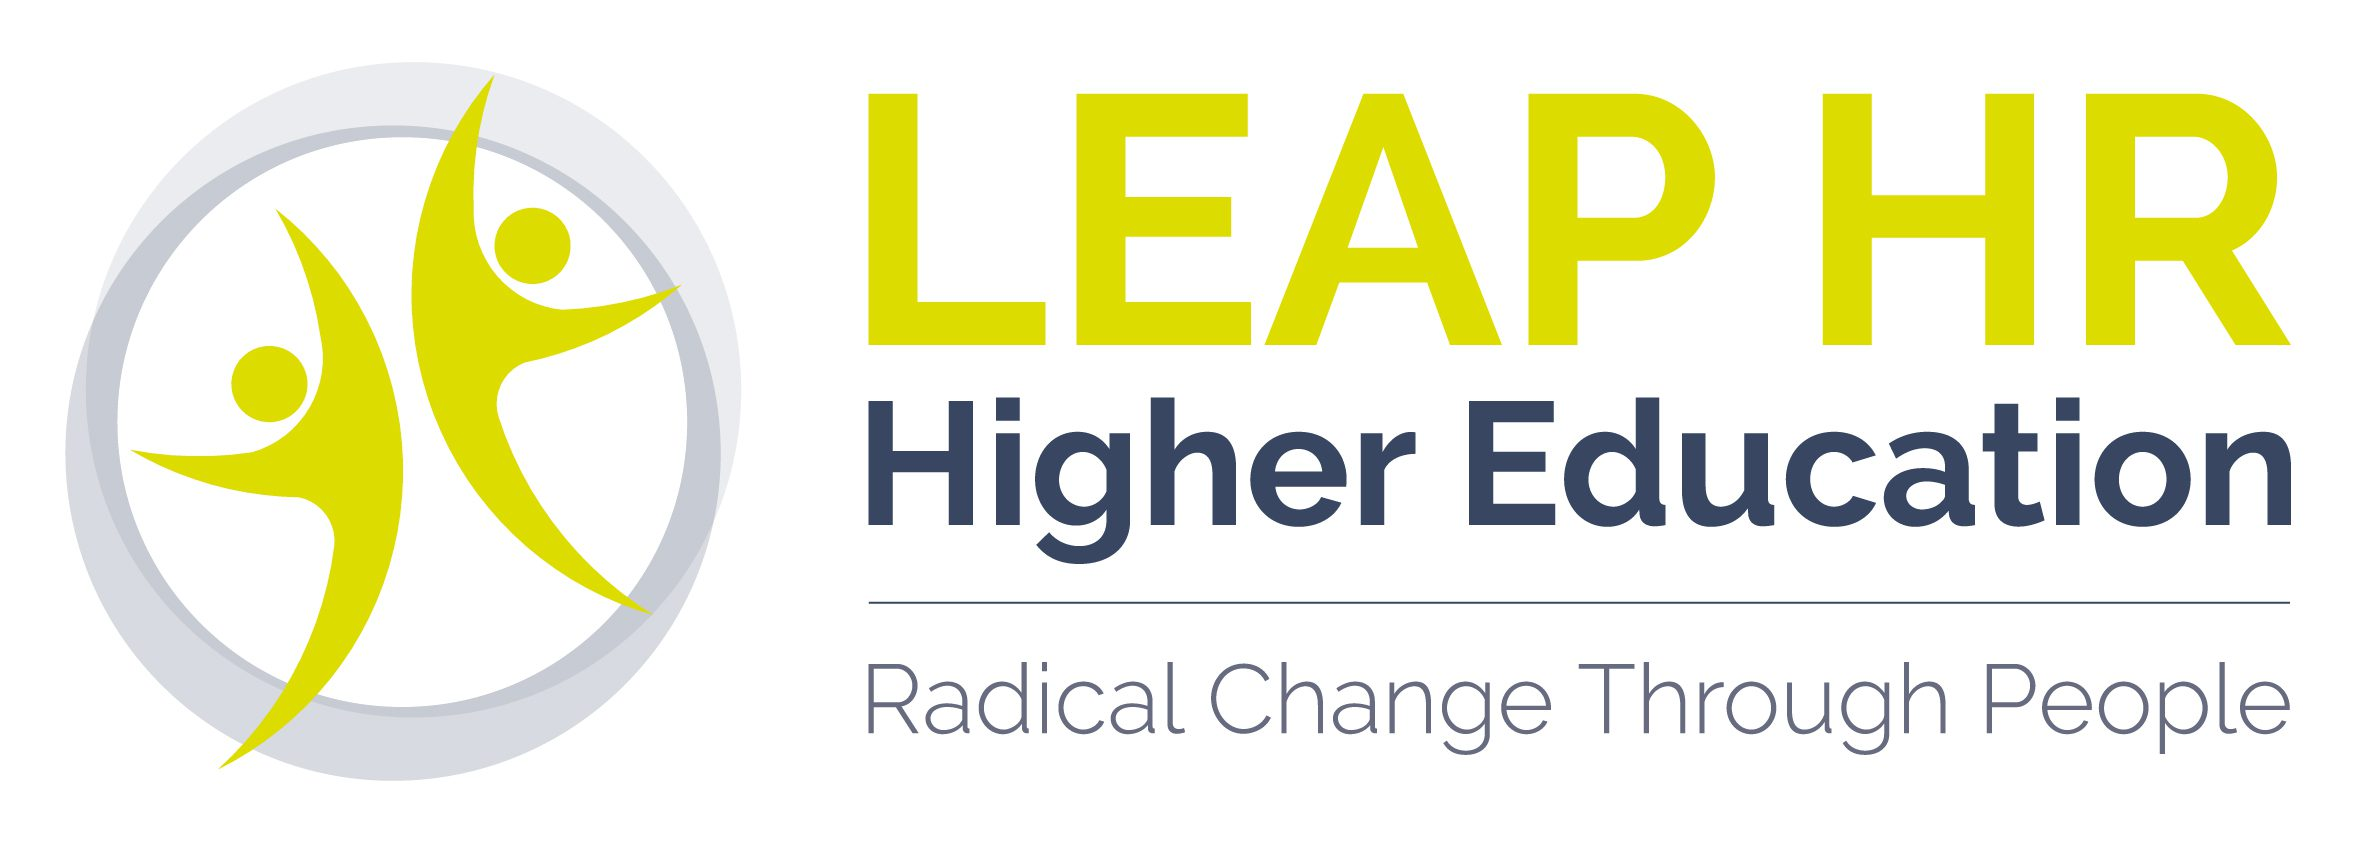 Hanson Wade - LEAP HR Higher Education Logo - AW